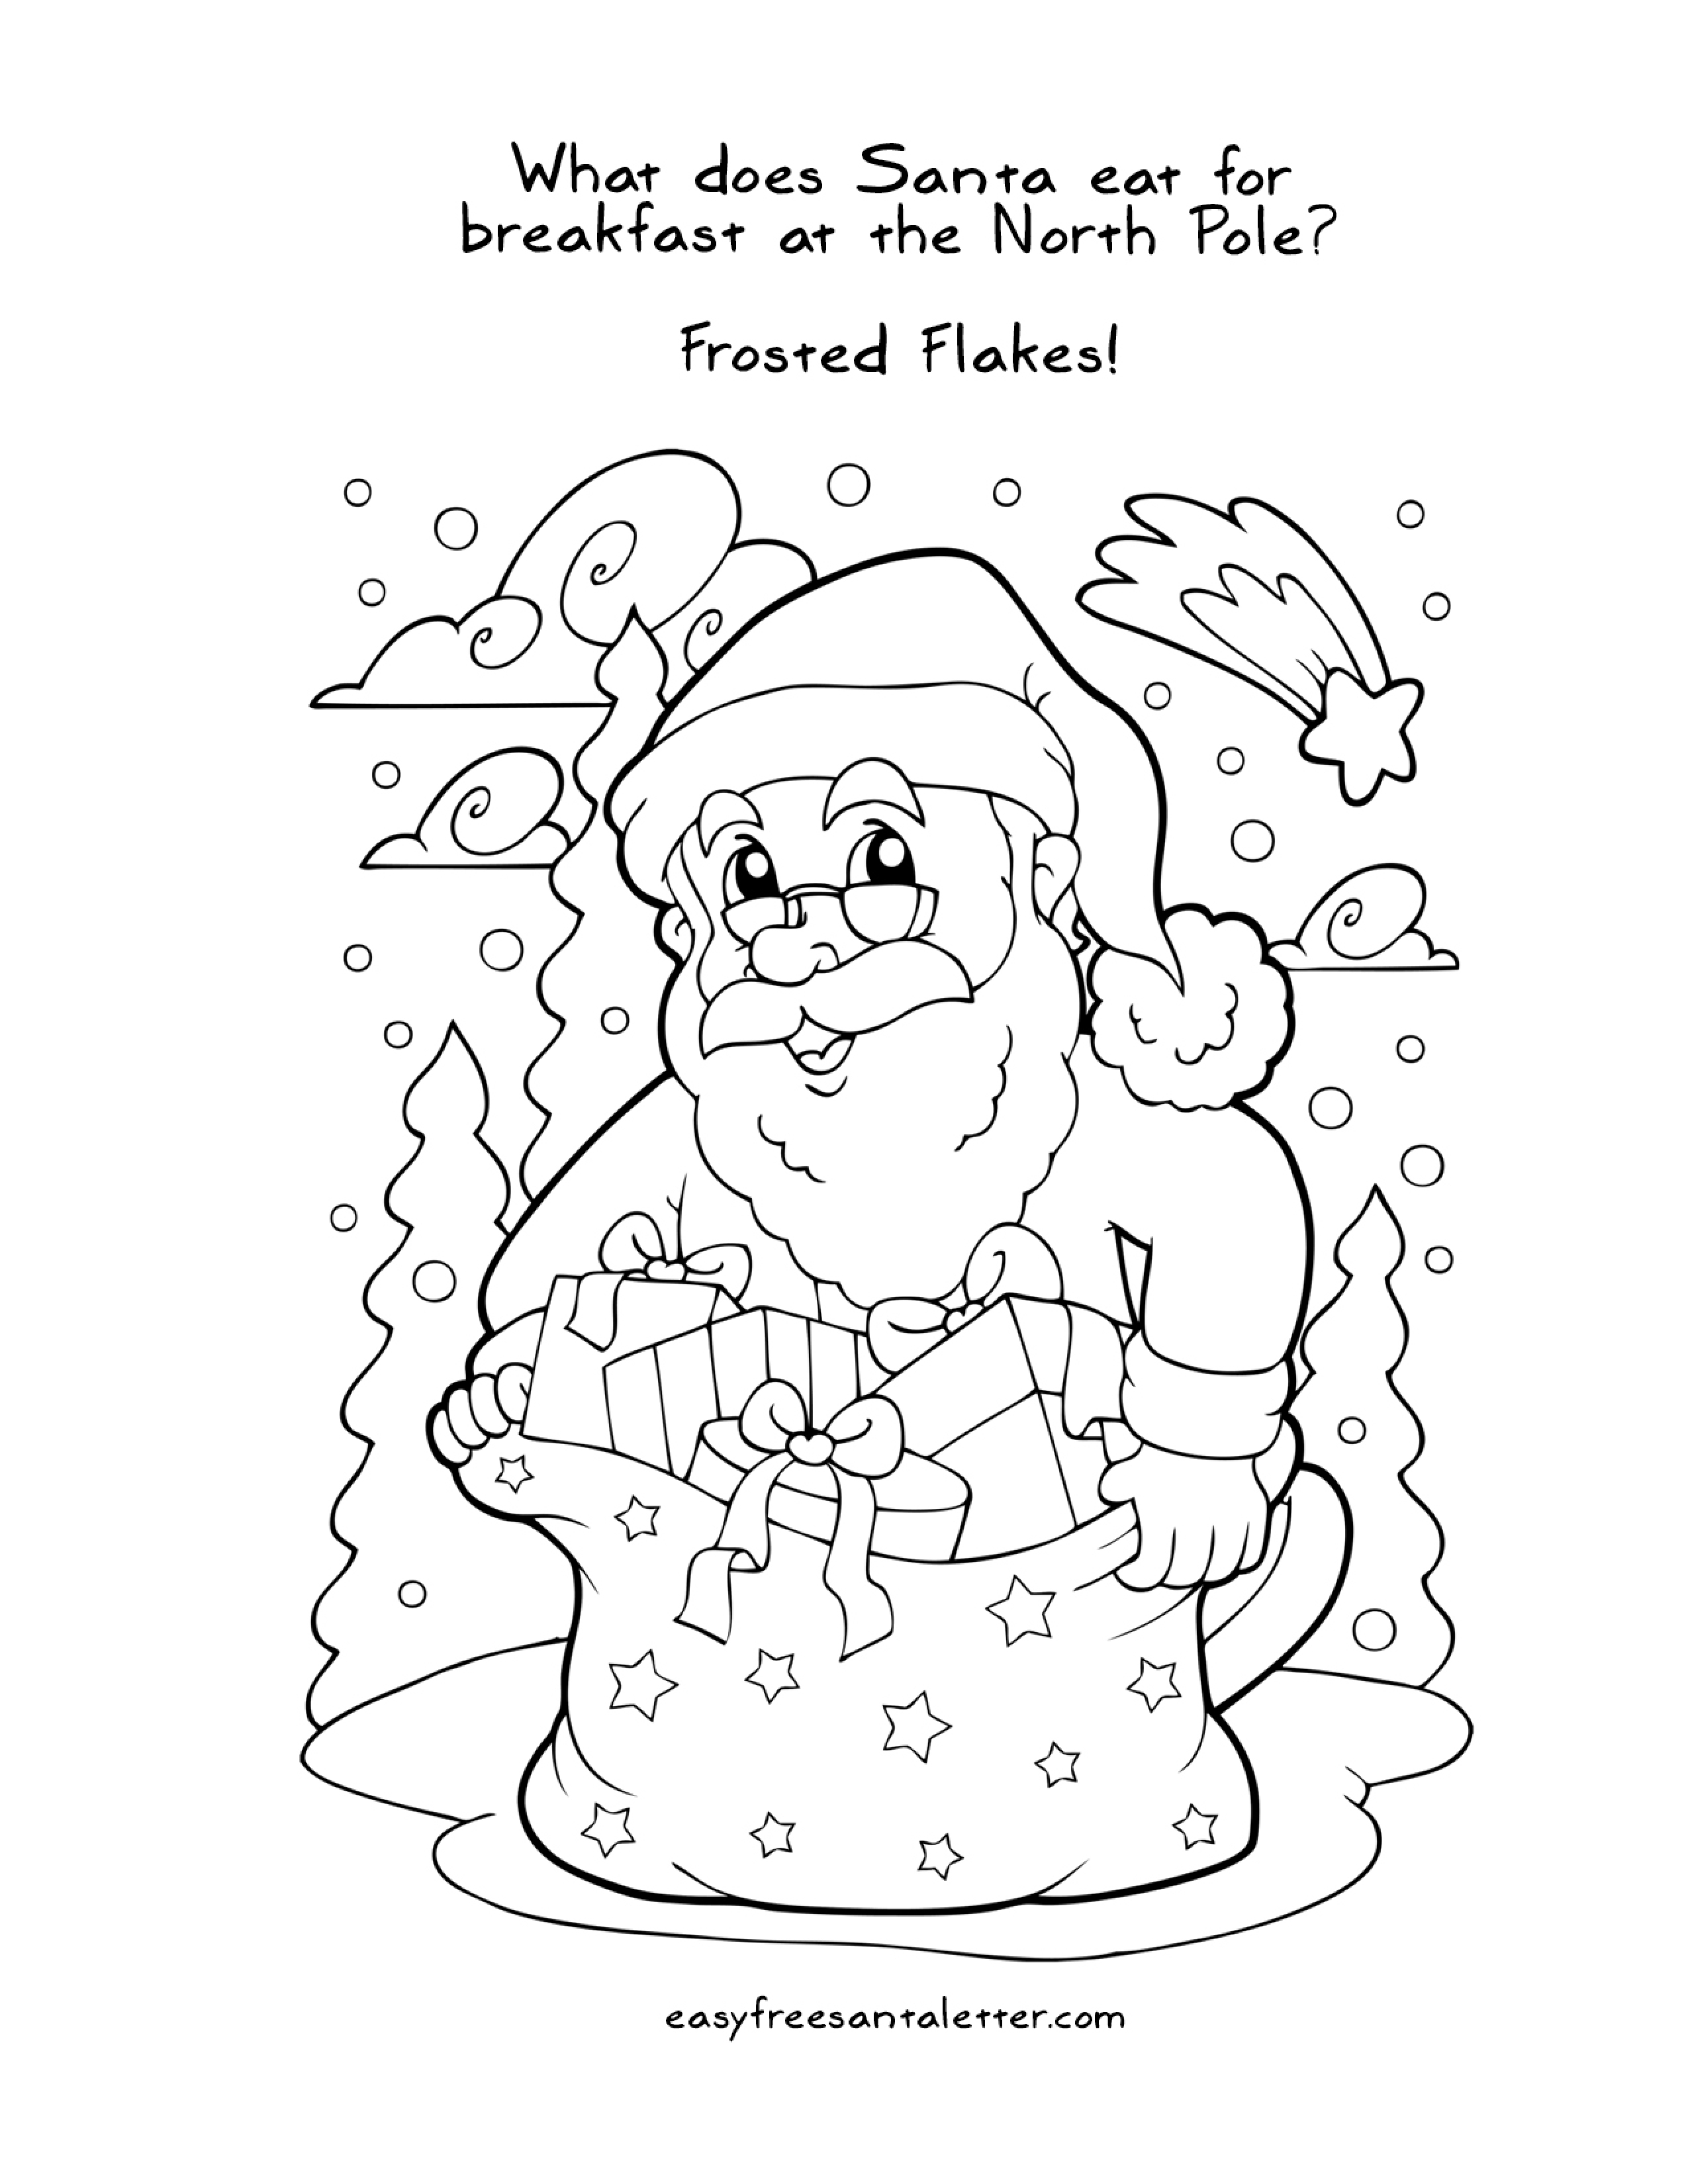 Free Printable Christmas Coloring Pages With Jokes